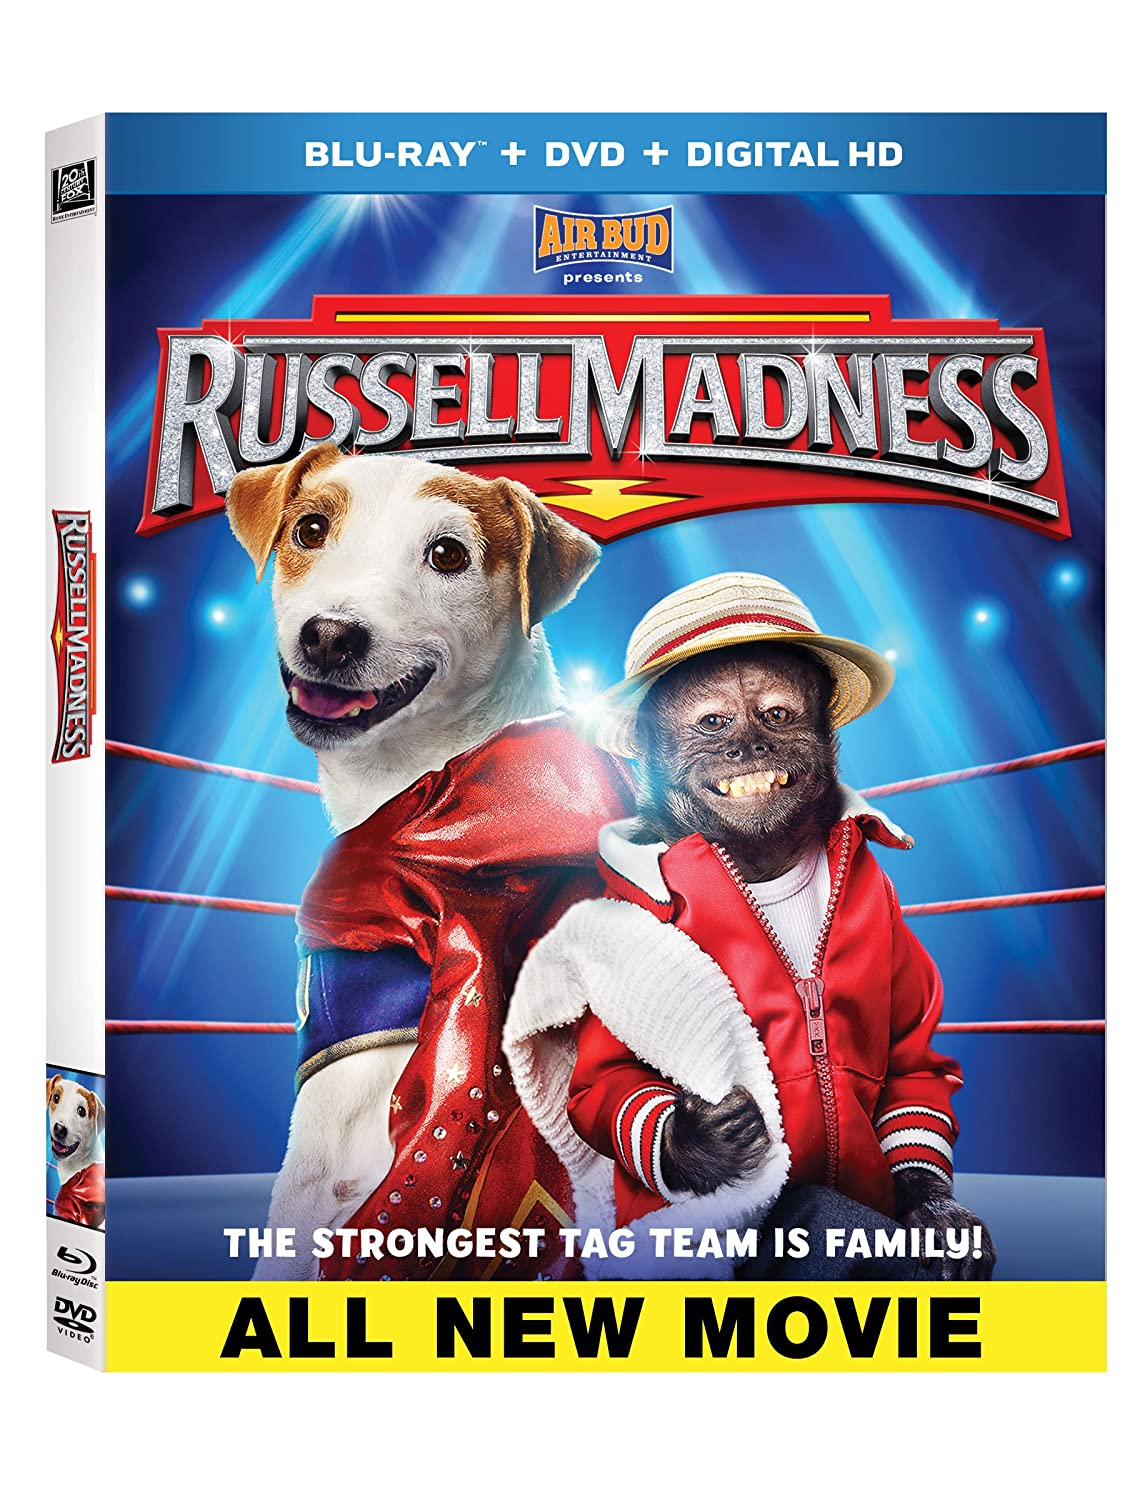 http://www.amazon.com/Russell-Madness-Blu-ray-Milchard-Ferraro/dp/B00S58LLAC/